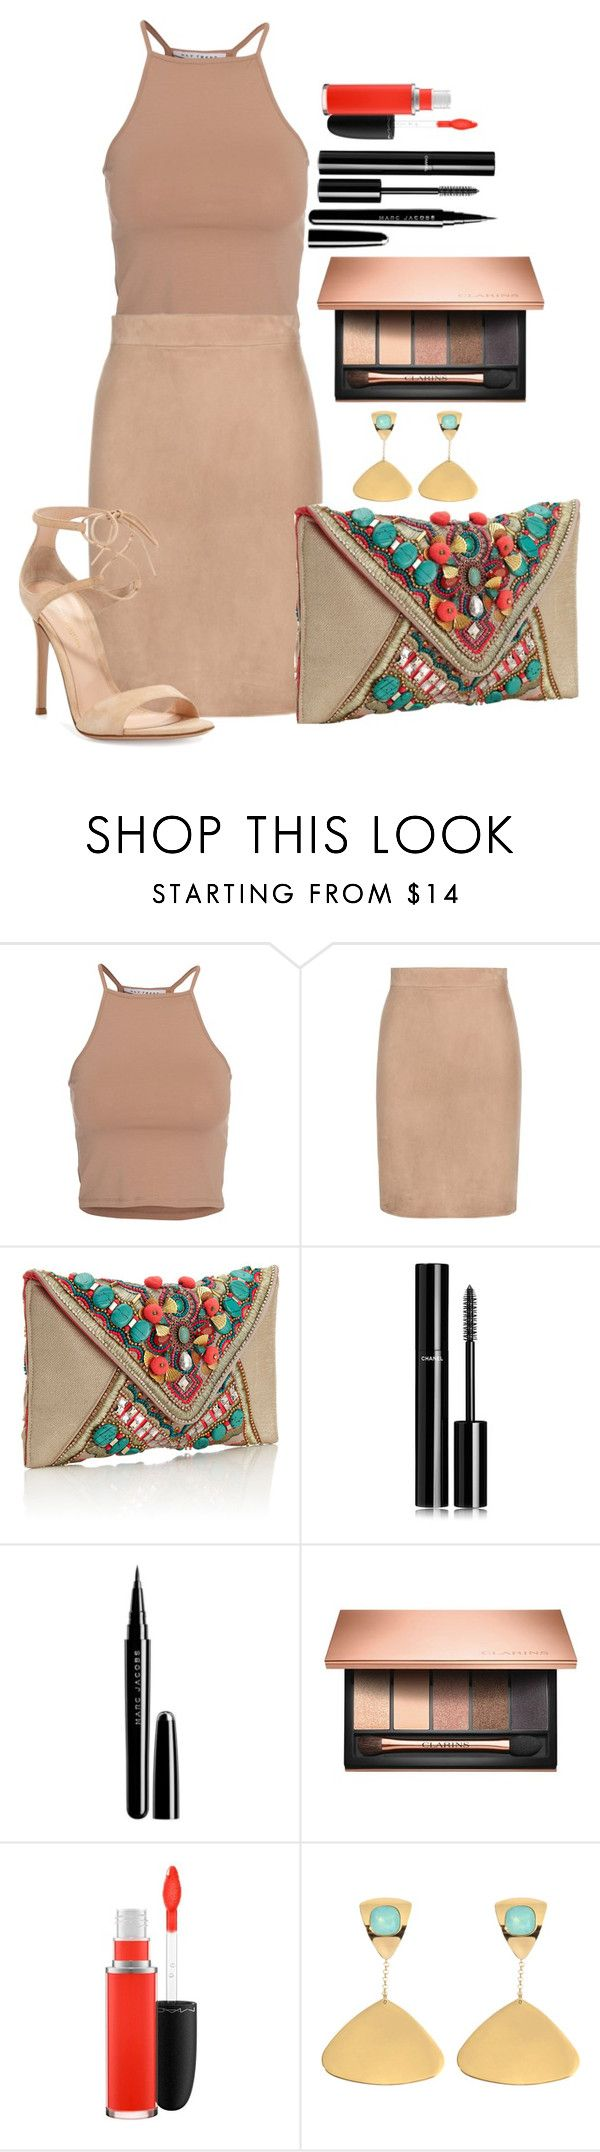 """Untitled #1400"" by fabianarveloc on Polyvore featuring NLY Trend, Tom Ford, Accessorize, Chanel, Marc Jacobs, Clarins, MAC Cosmetics, Helene Zubeldia, Gianvito Rossi and women's clothing"